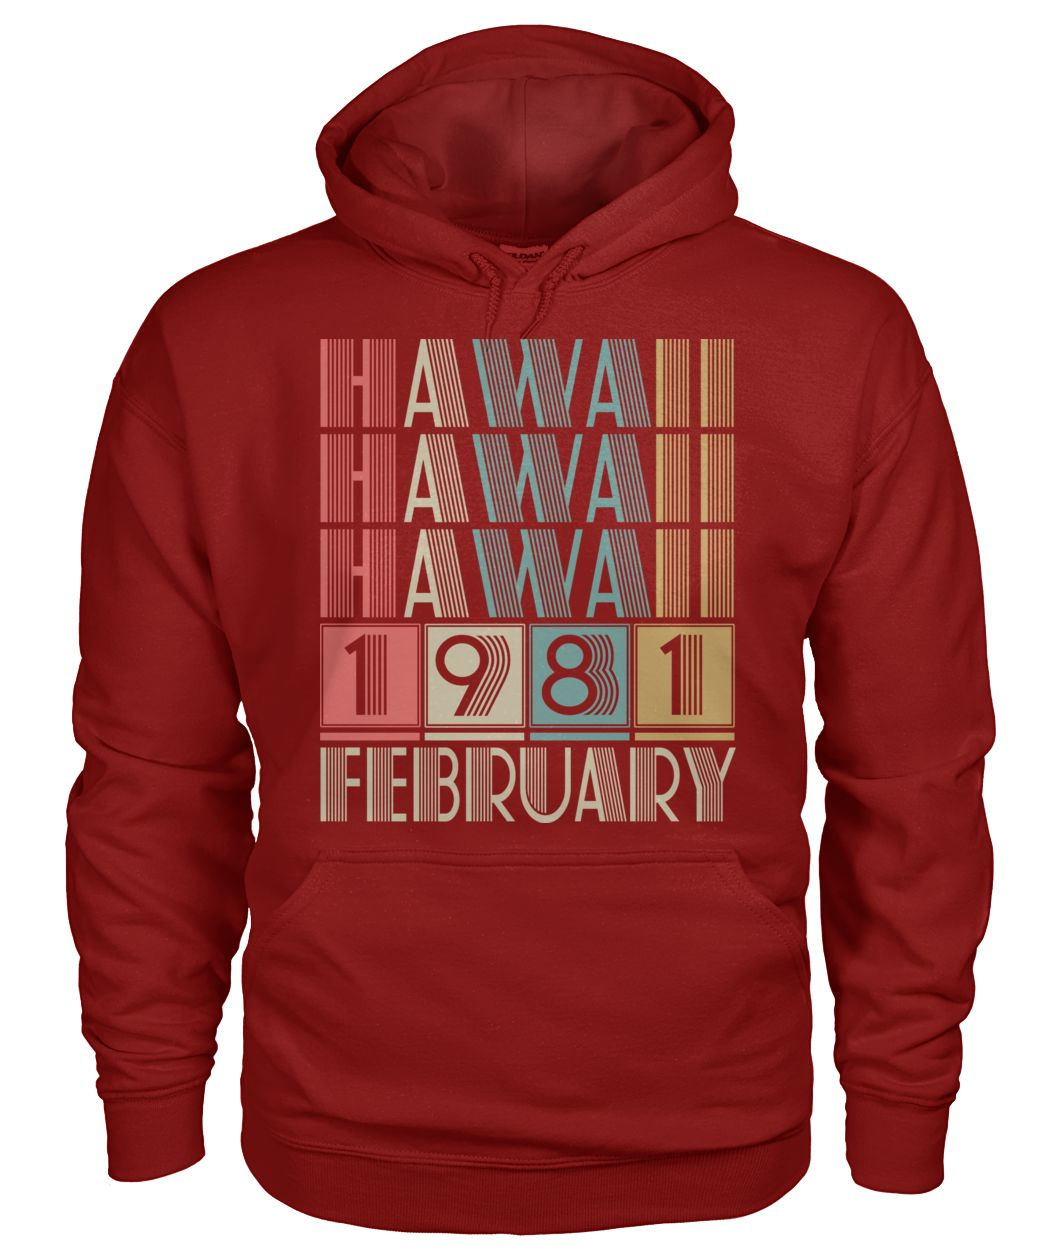 Born in Hawaii in February 1981 t shirt-Short Sleeves - TEEHOT.COM